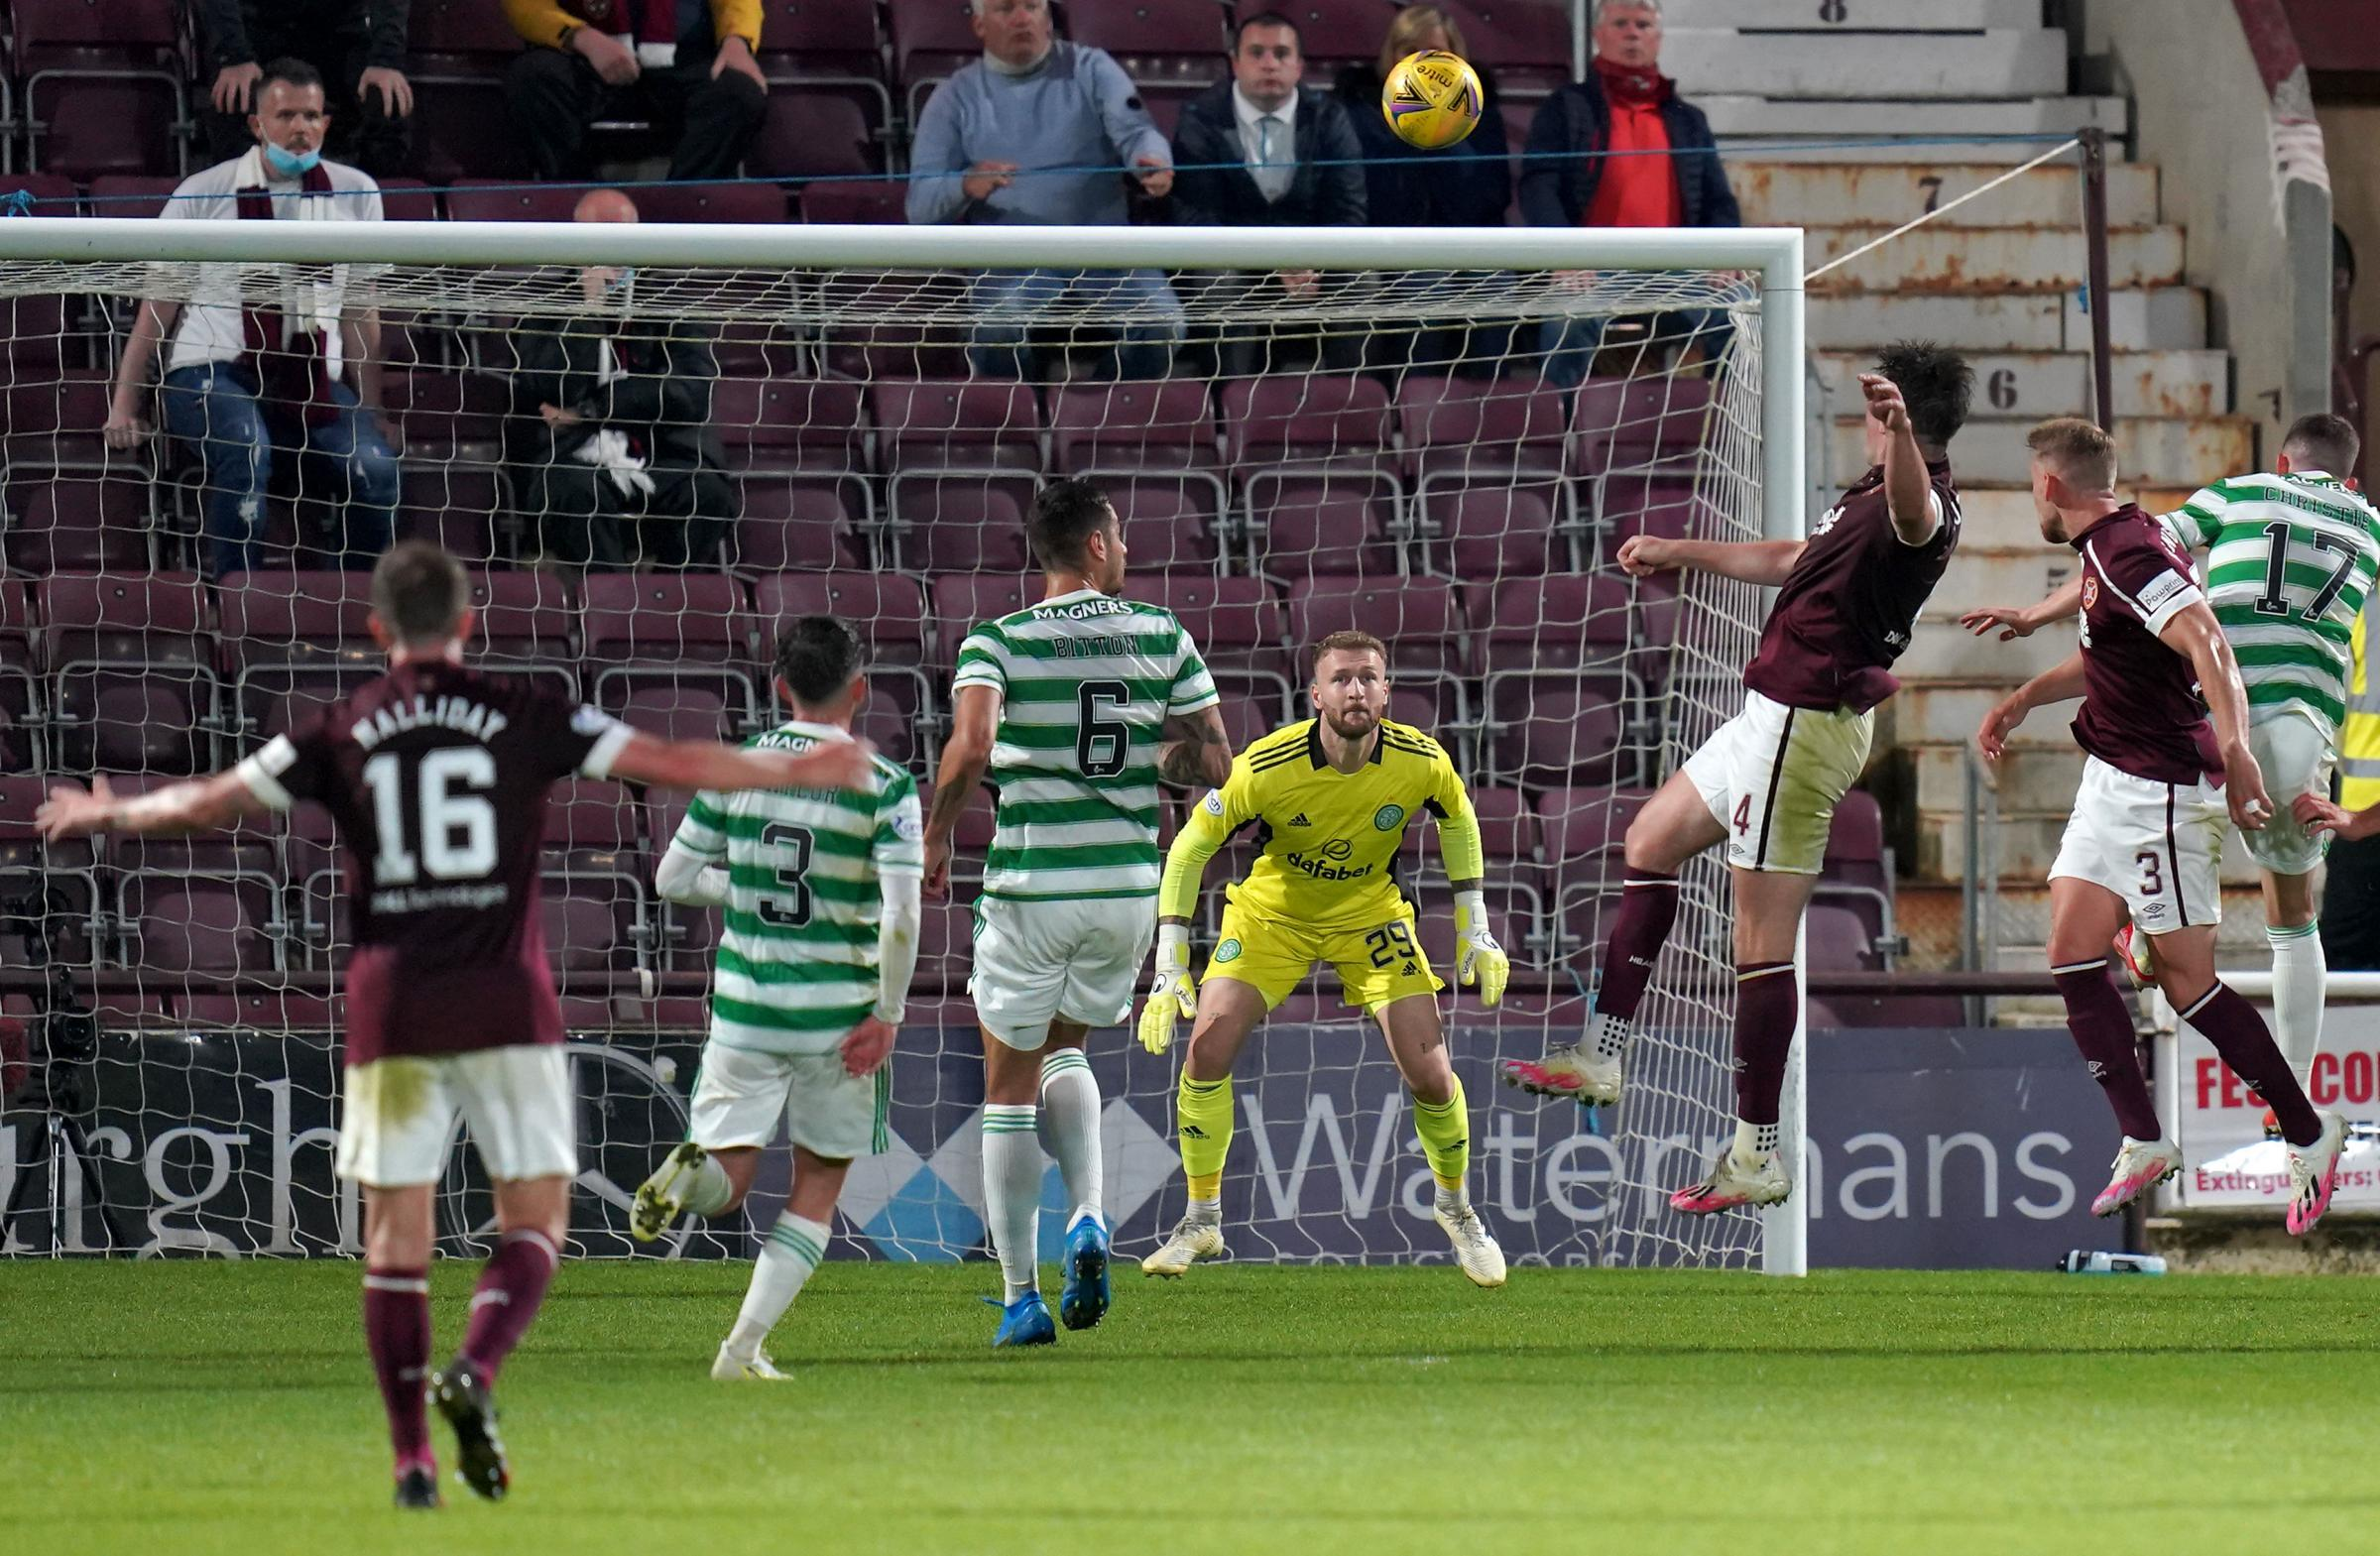 Hearts 2 Celtic 1: A tale of two keepers as John Souttar rocks Celtic and Tynecastle to their foundations